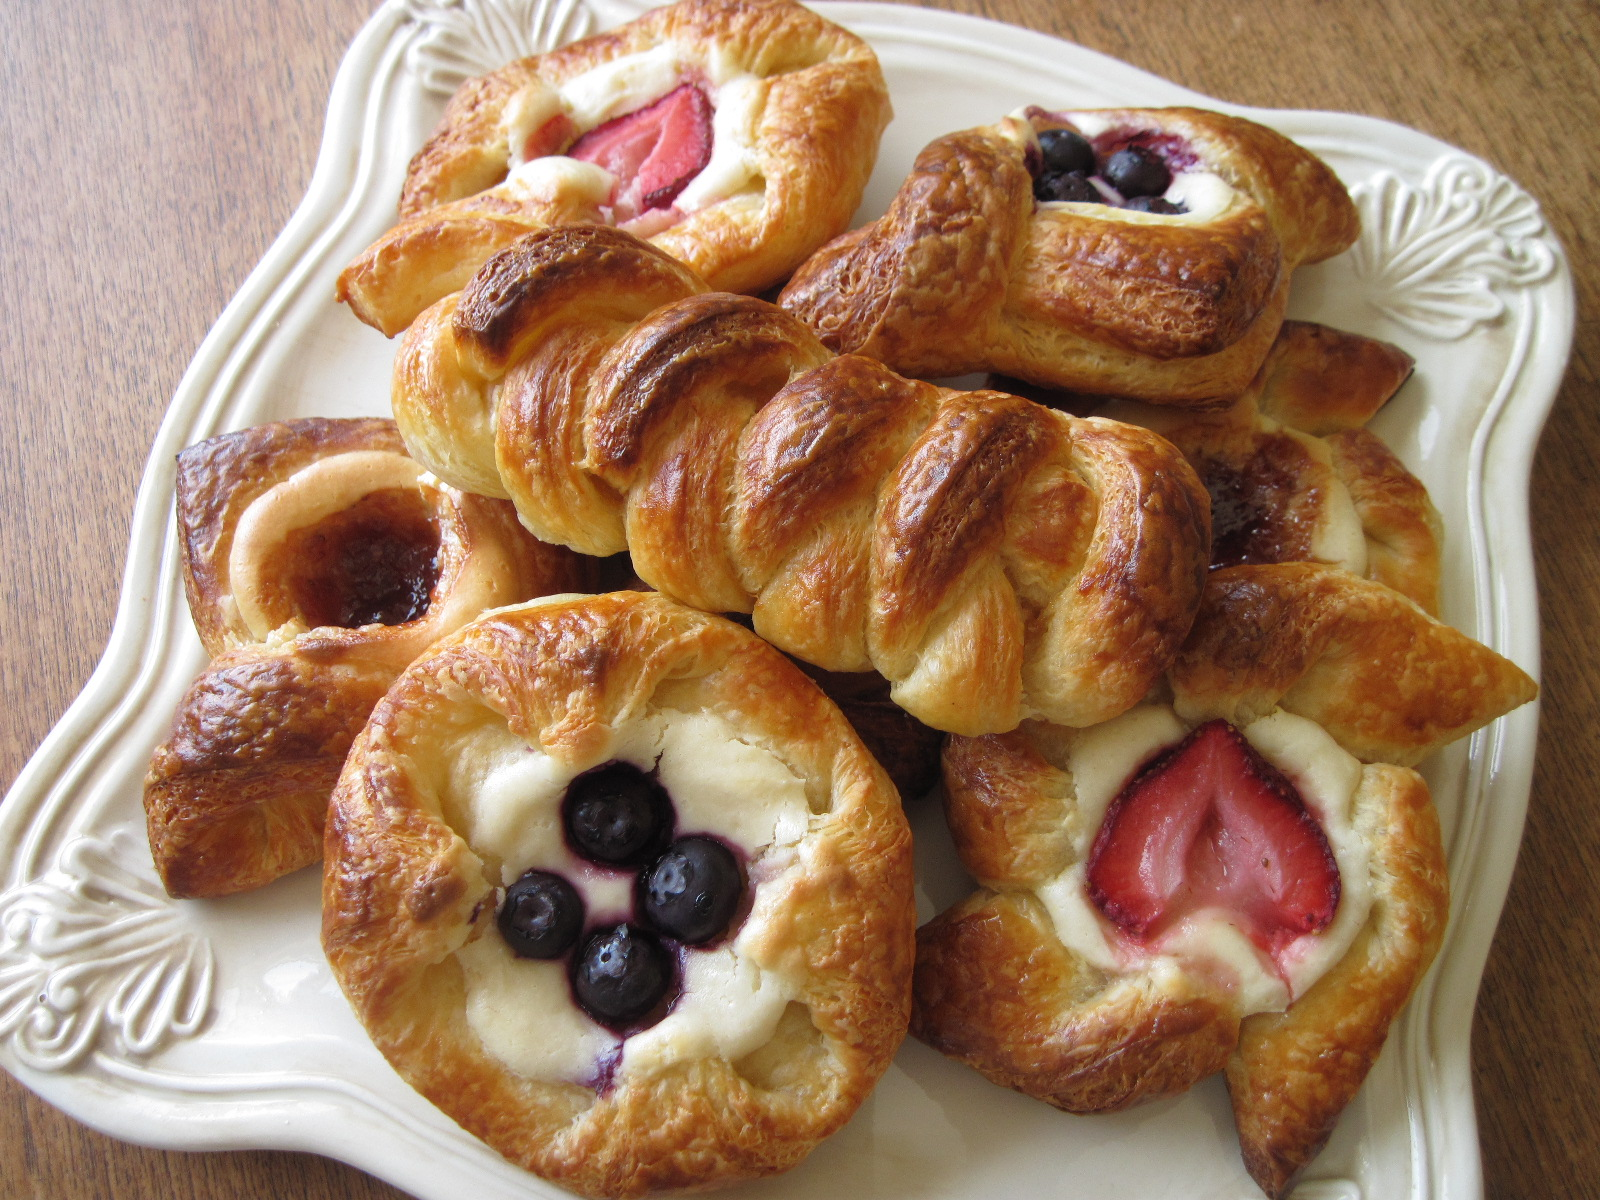 Danish Cakes And Pastries